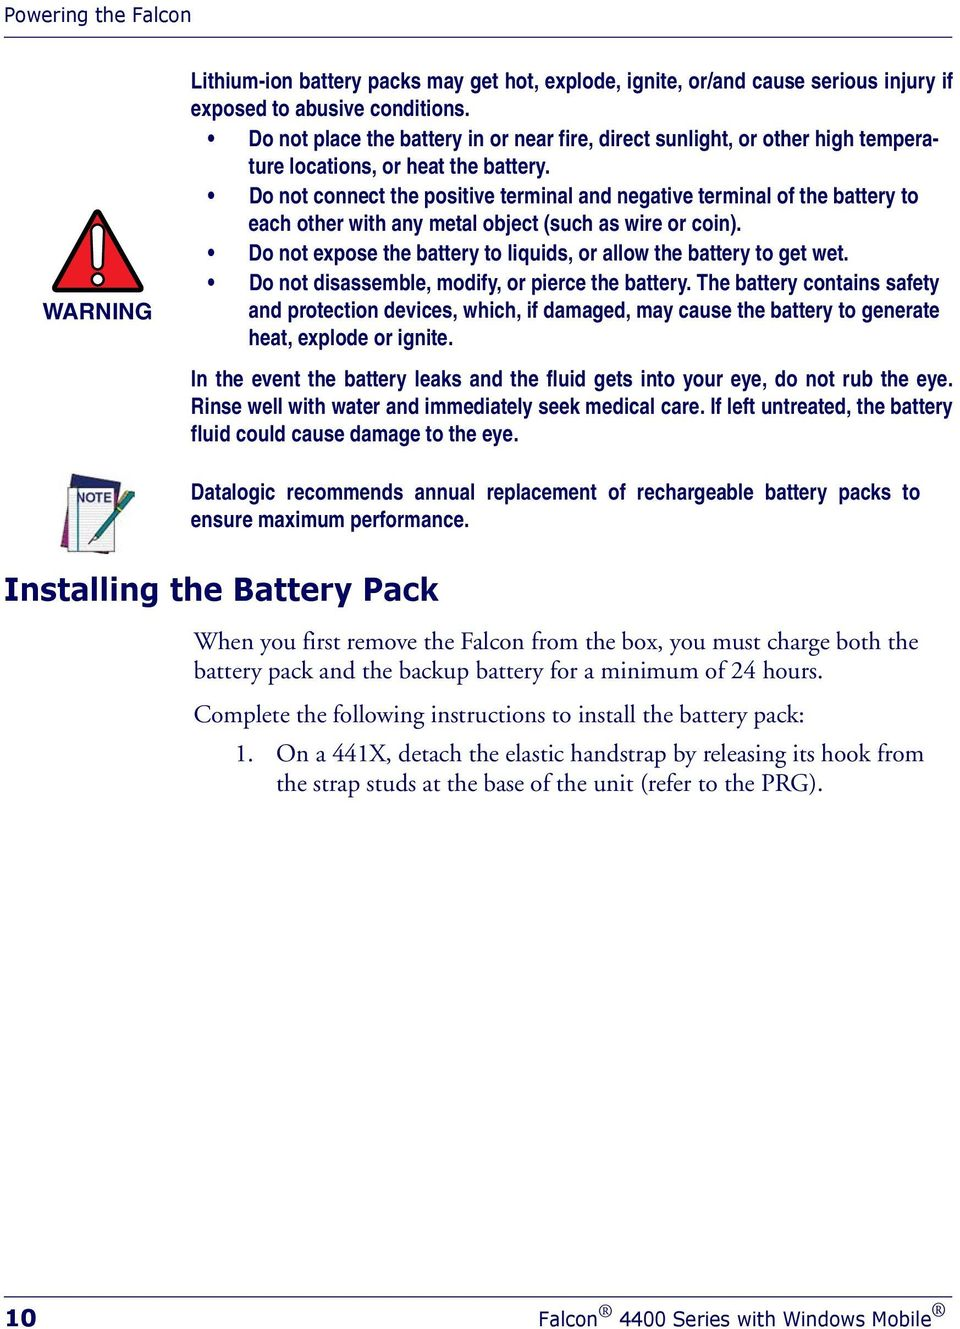 Do not connect the positive terminal and negative terminal of the battery to each other with any metal object (such as wire or coin).